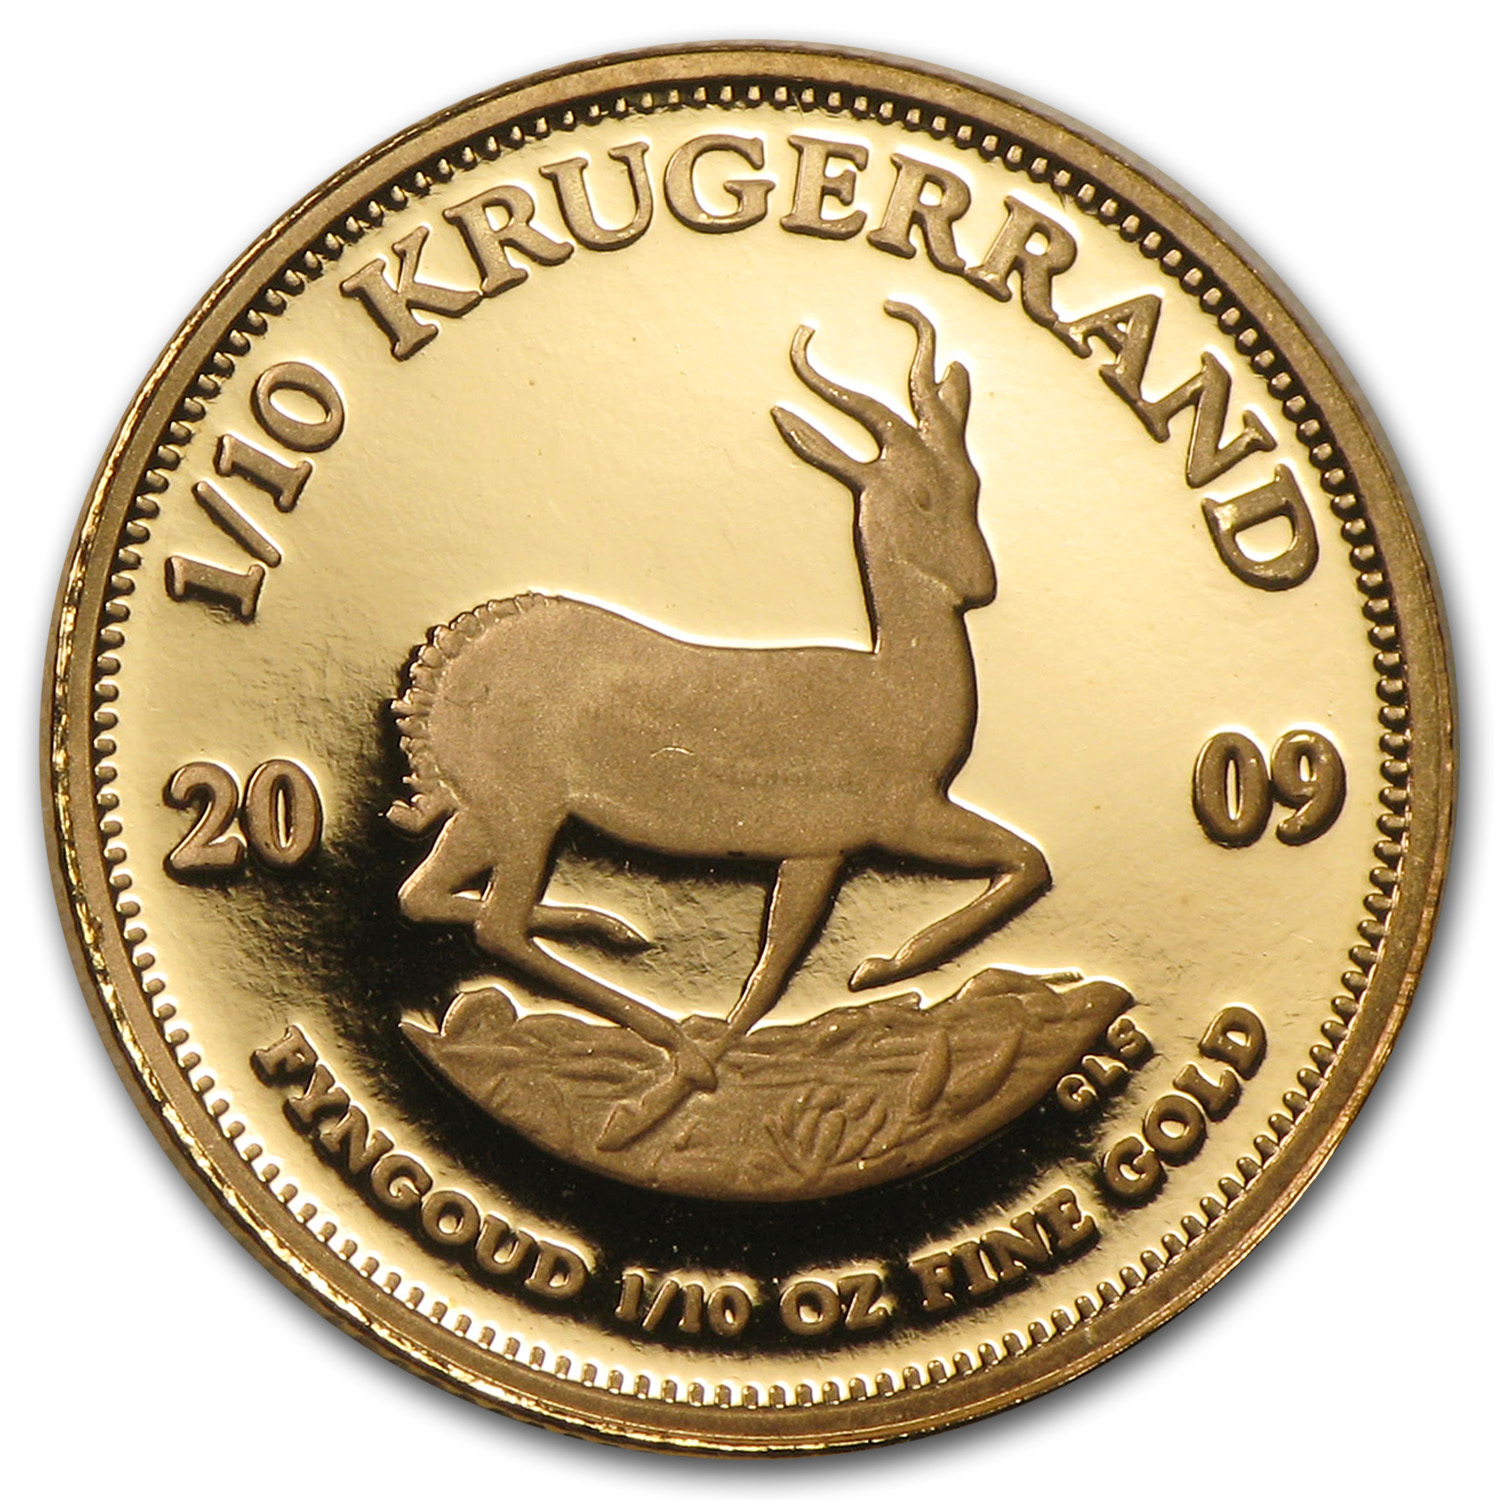 2009 1/10 oz Gold South African Krugerrand (Proof)